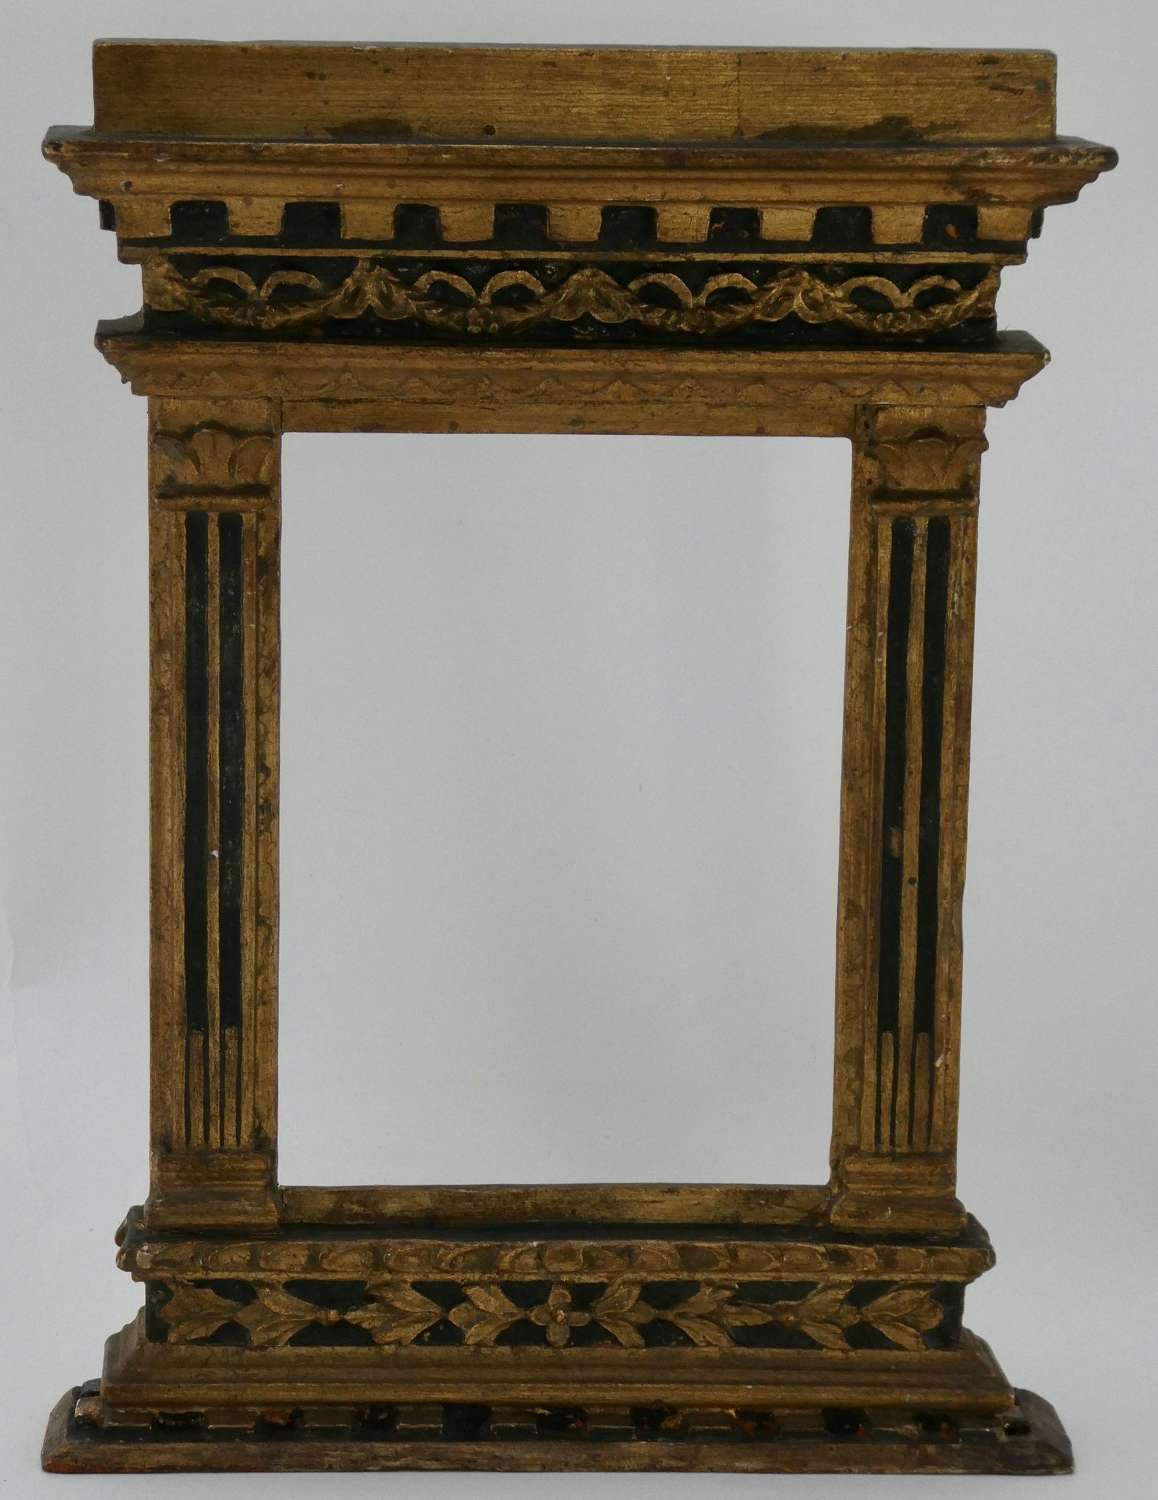 19th Century Giltwood Tabernacle Frame